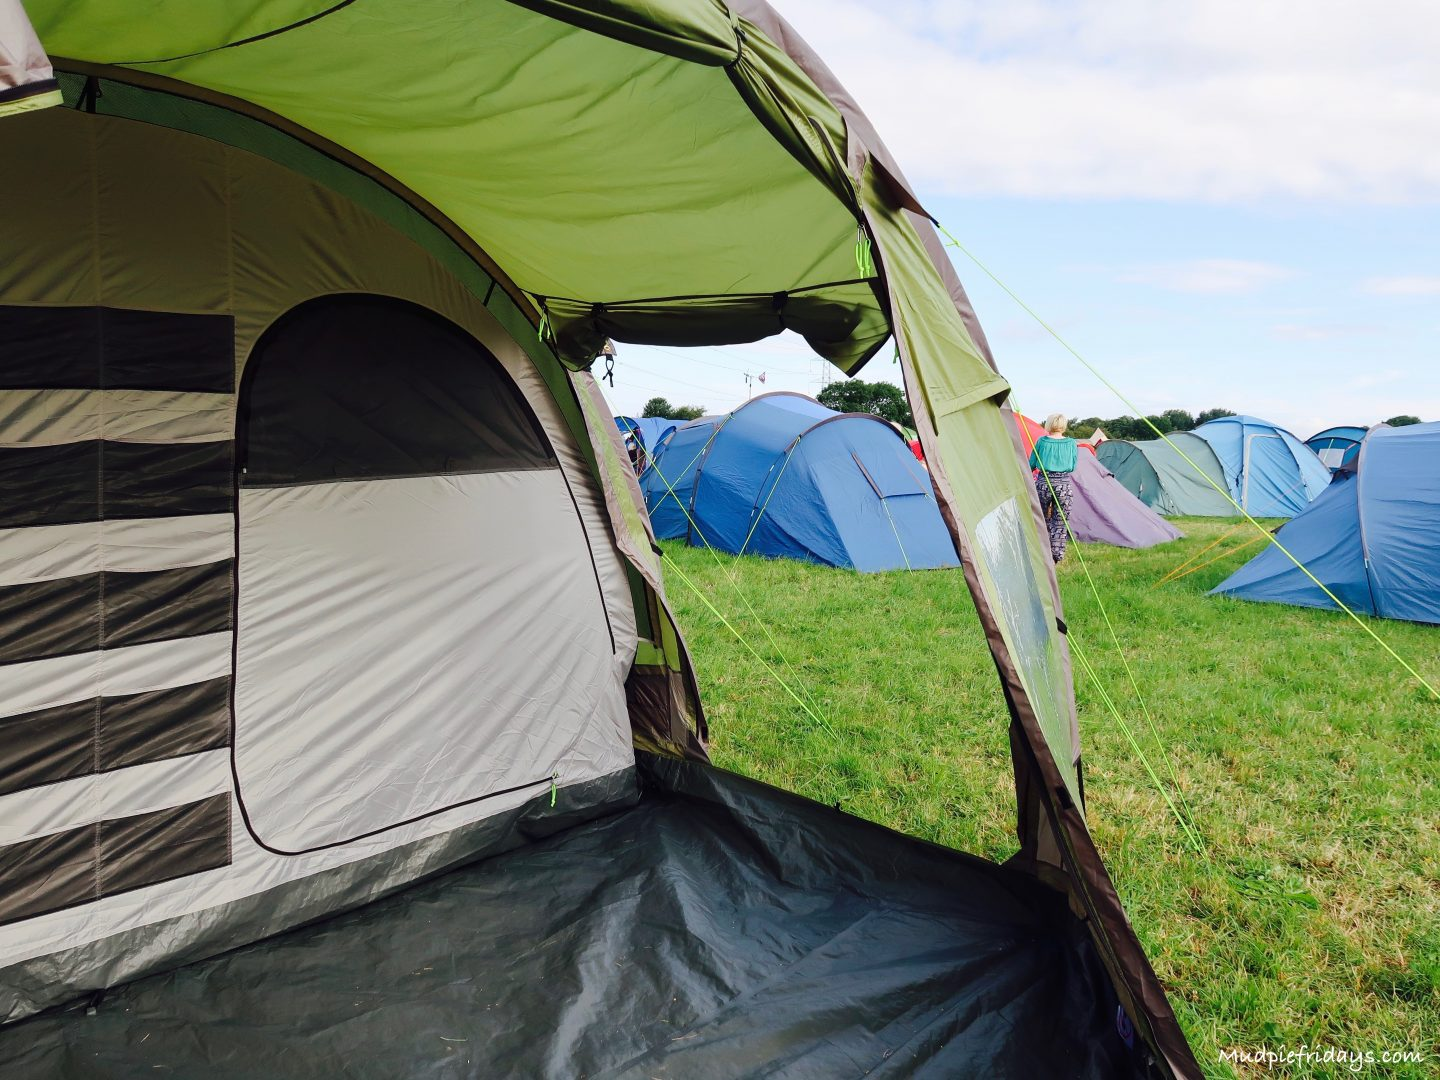 Both nights it rained heavily and we all survived unscathed the tent did a great job even though it was horrid outside. In the mornings we opened up the ... & Eurohike 600 Rydal Tent Review - mudpiefridays.com